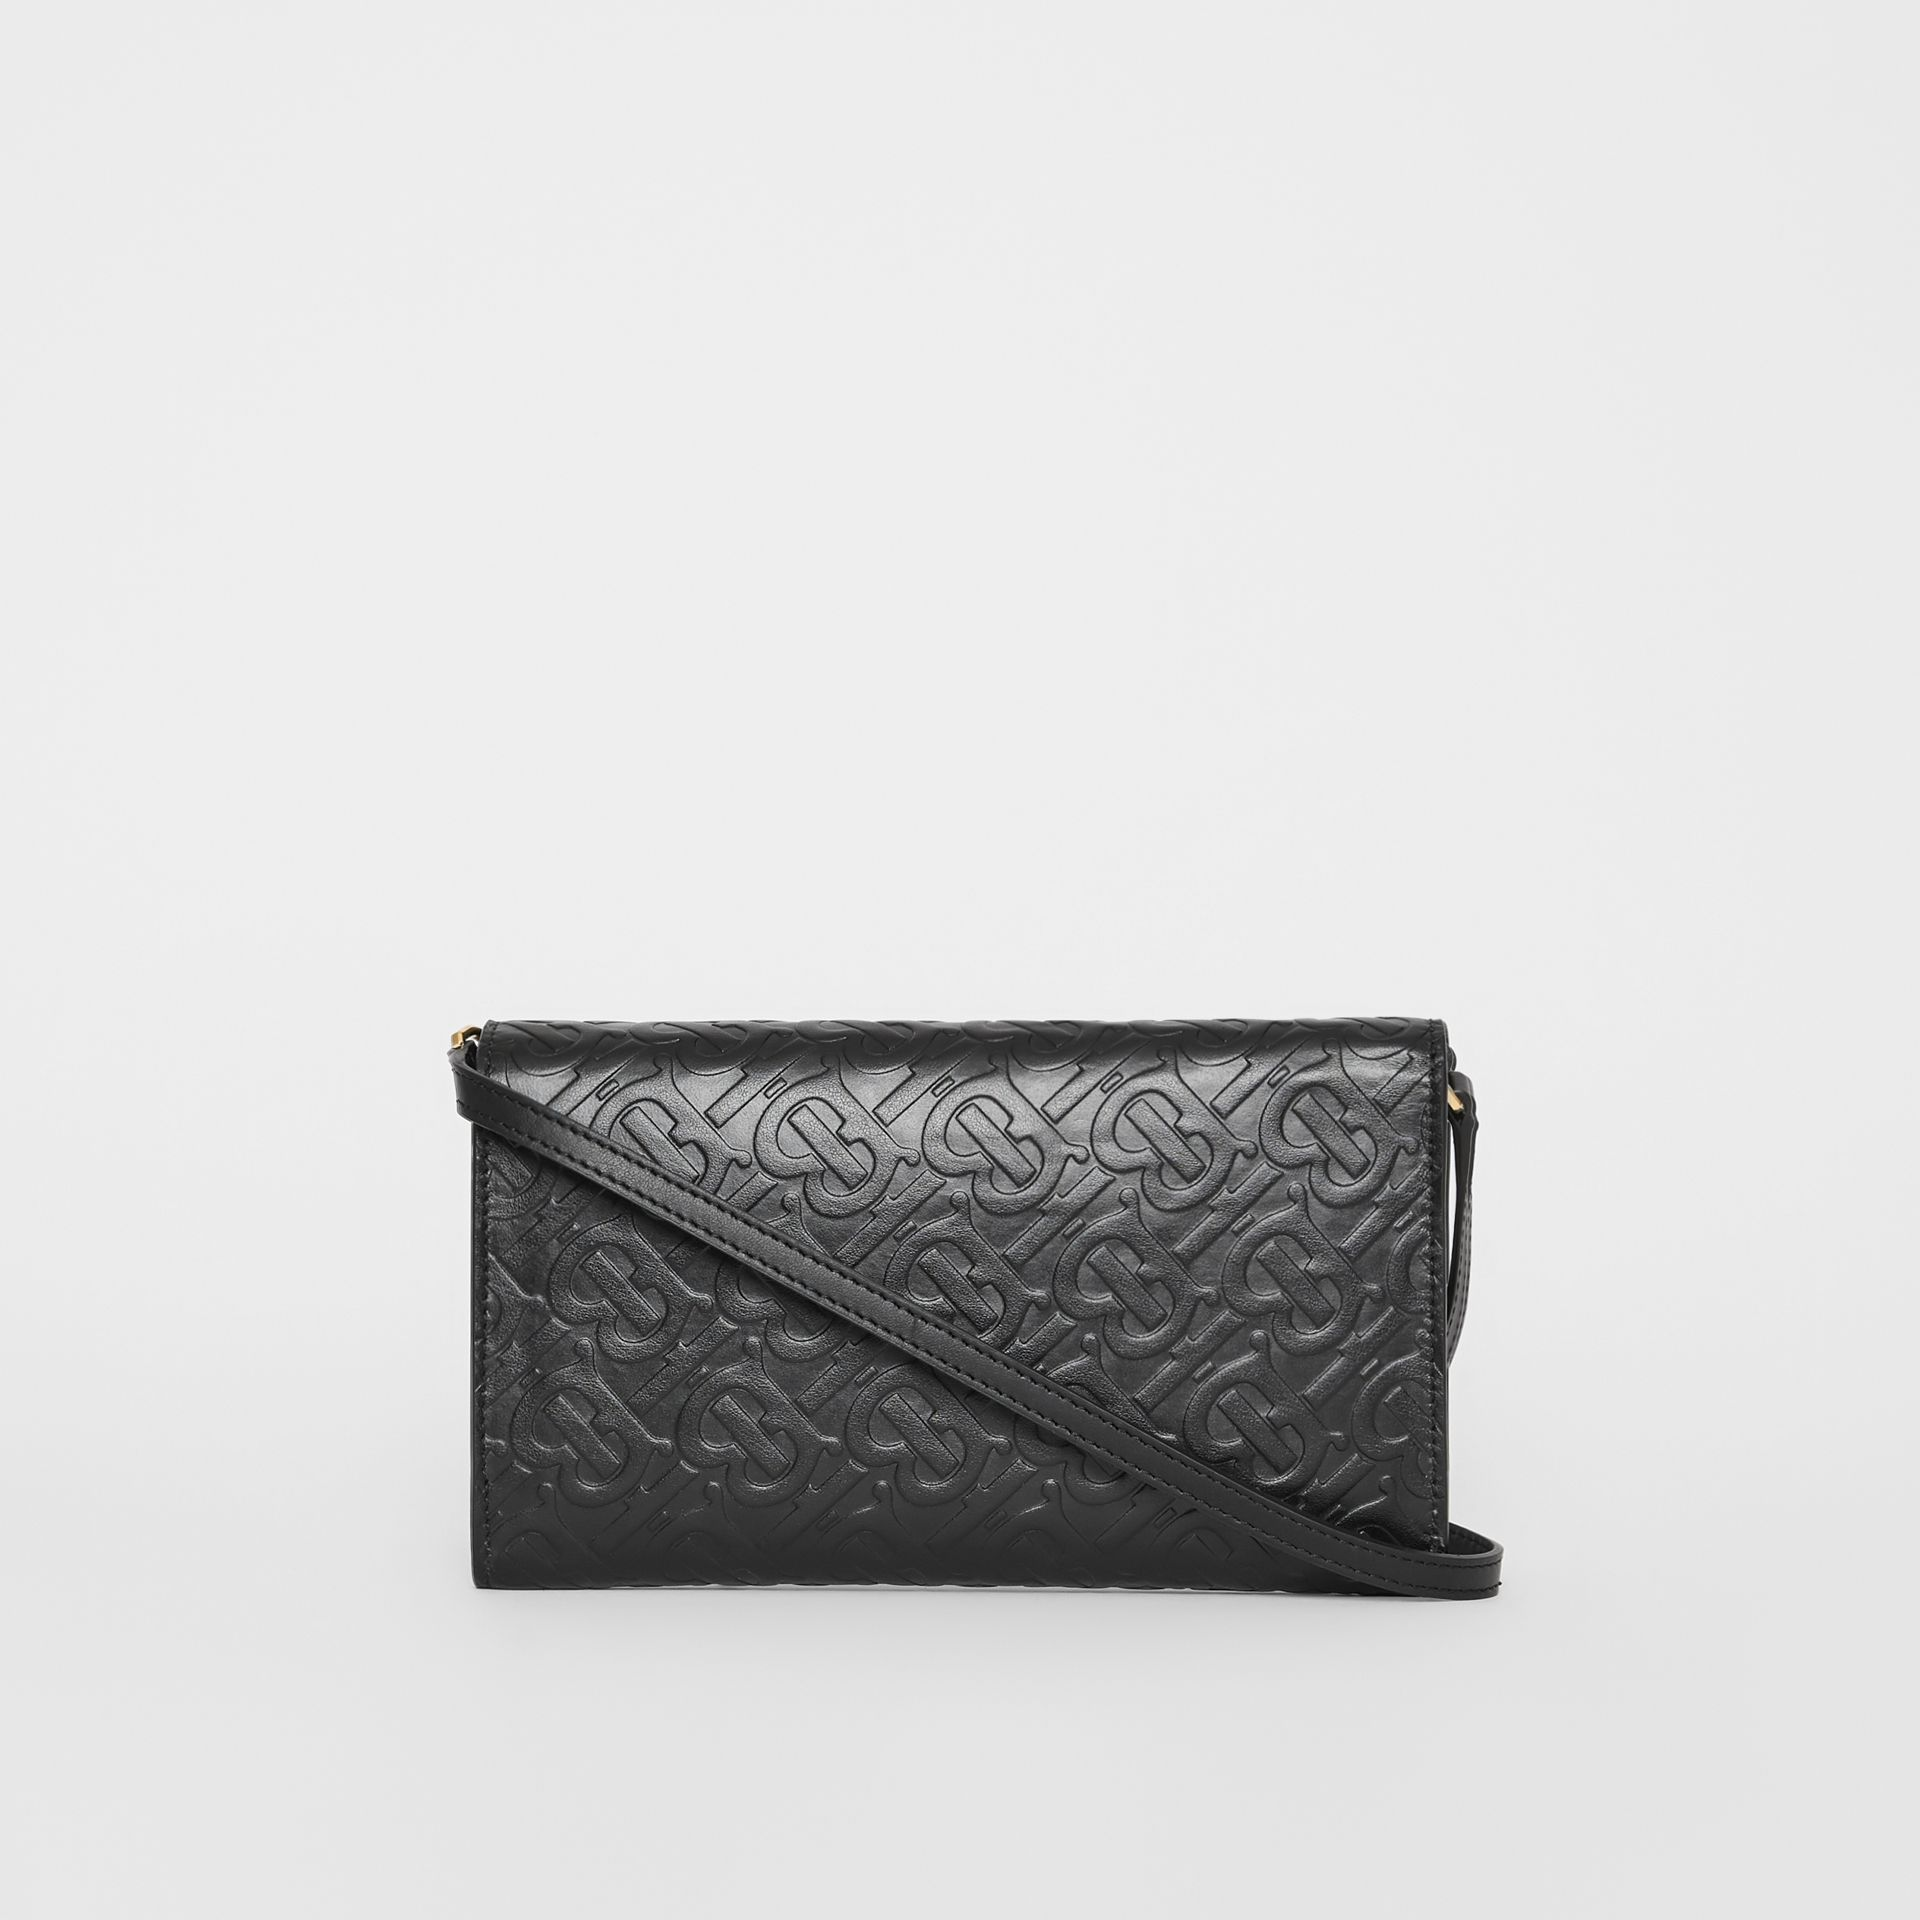 Monogram Leather Wallet with Detachable Strap in Black - Women | Burberry Hong Kong S.A.R - gallery image 7